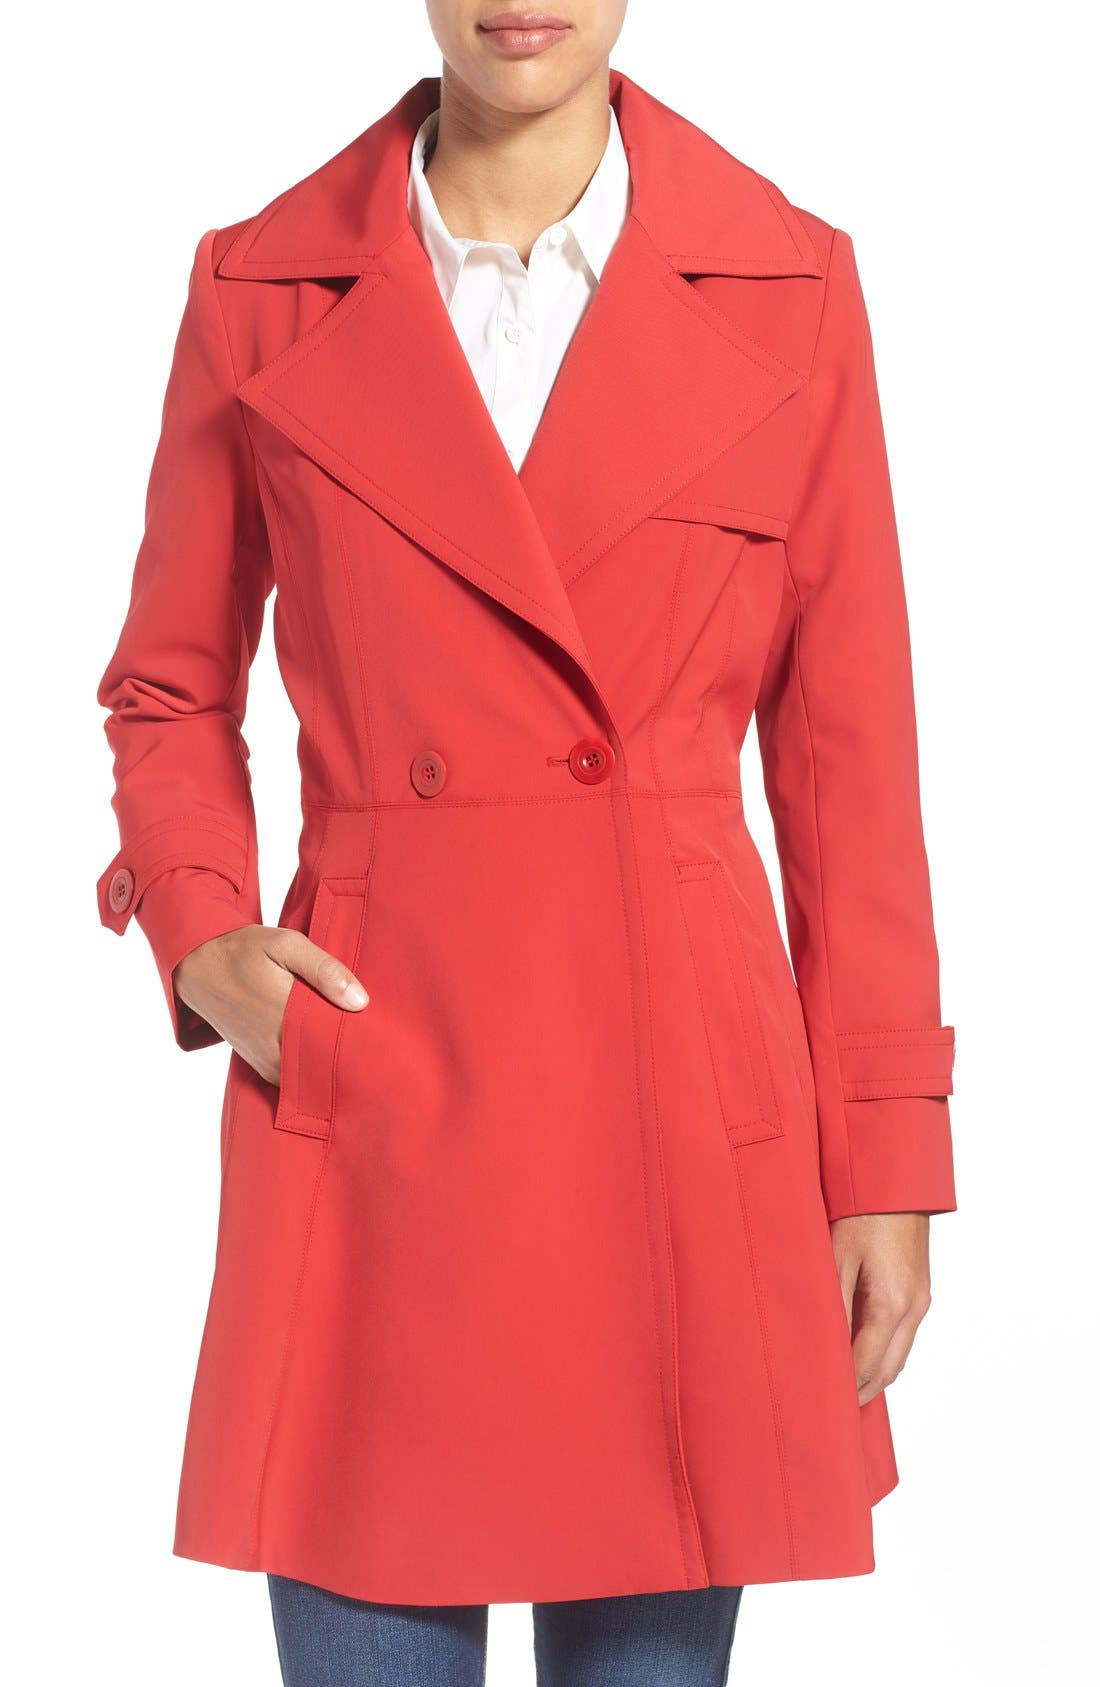 Trina Turk 'Phoebe' Double Breasted Trench Coat (Online Only) (Regular & Petite)